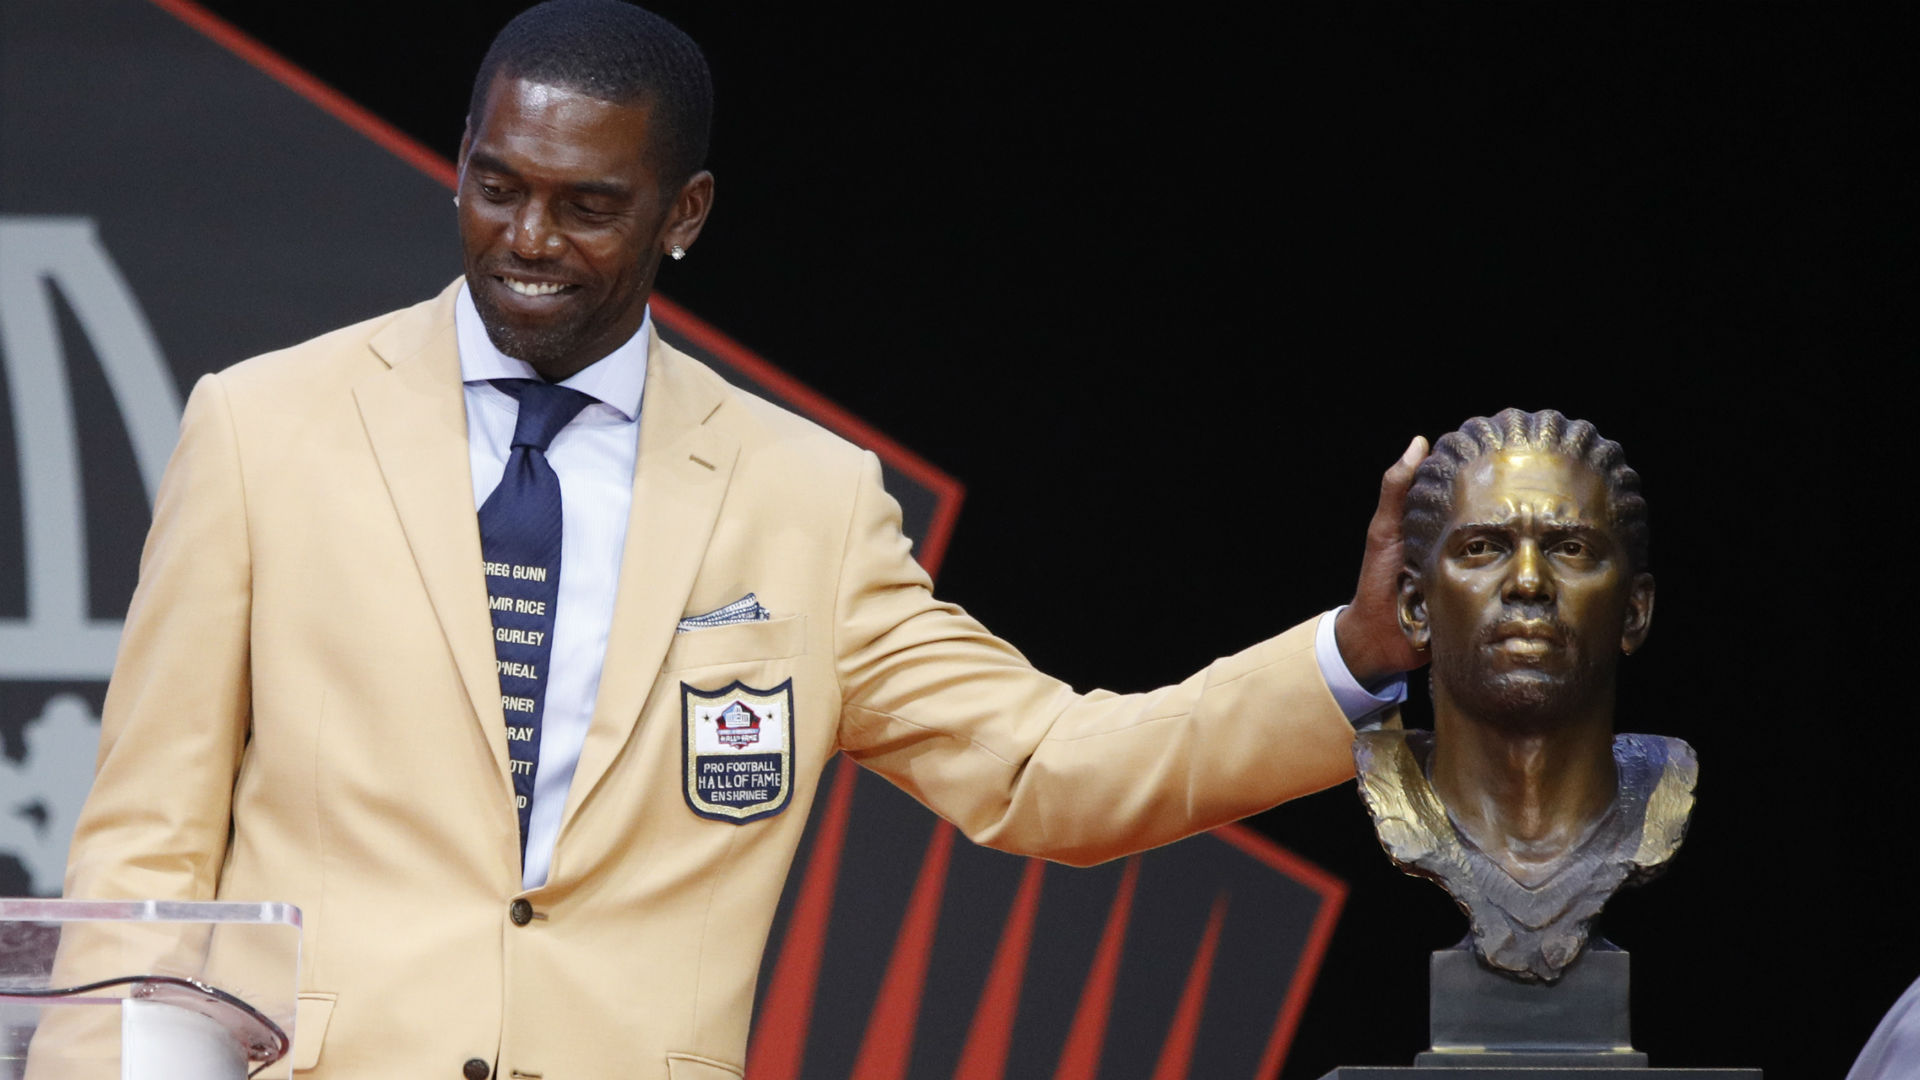 Randy Moss Inducted Into Pro Football Hall of Fame